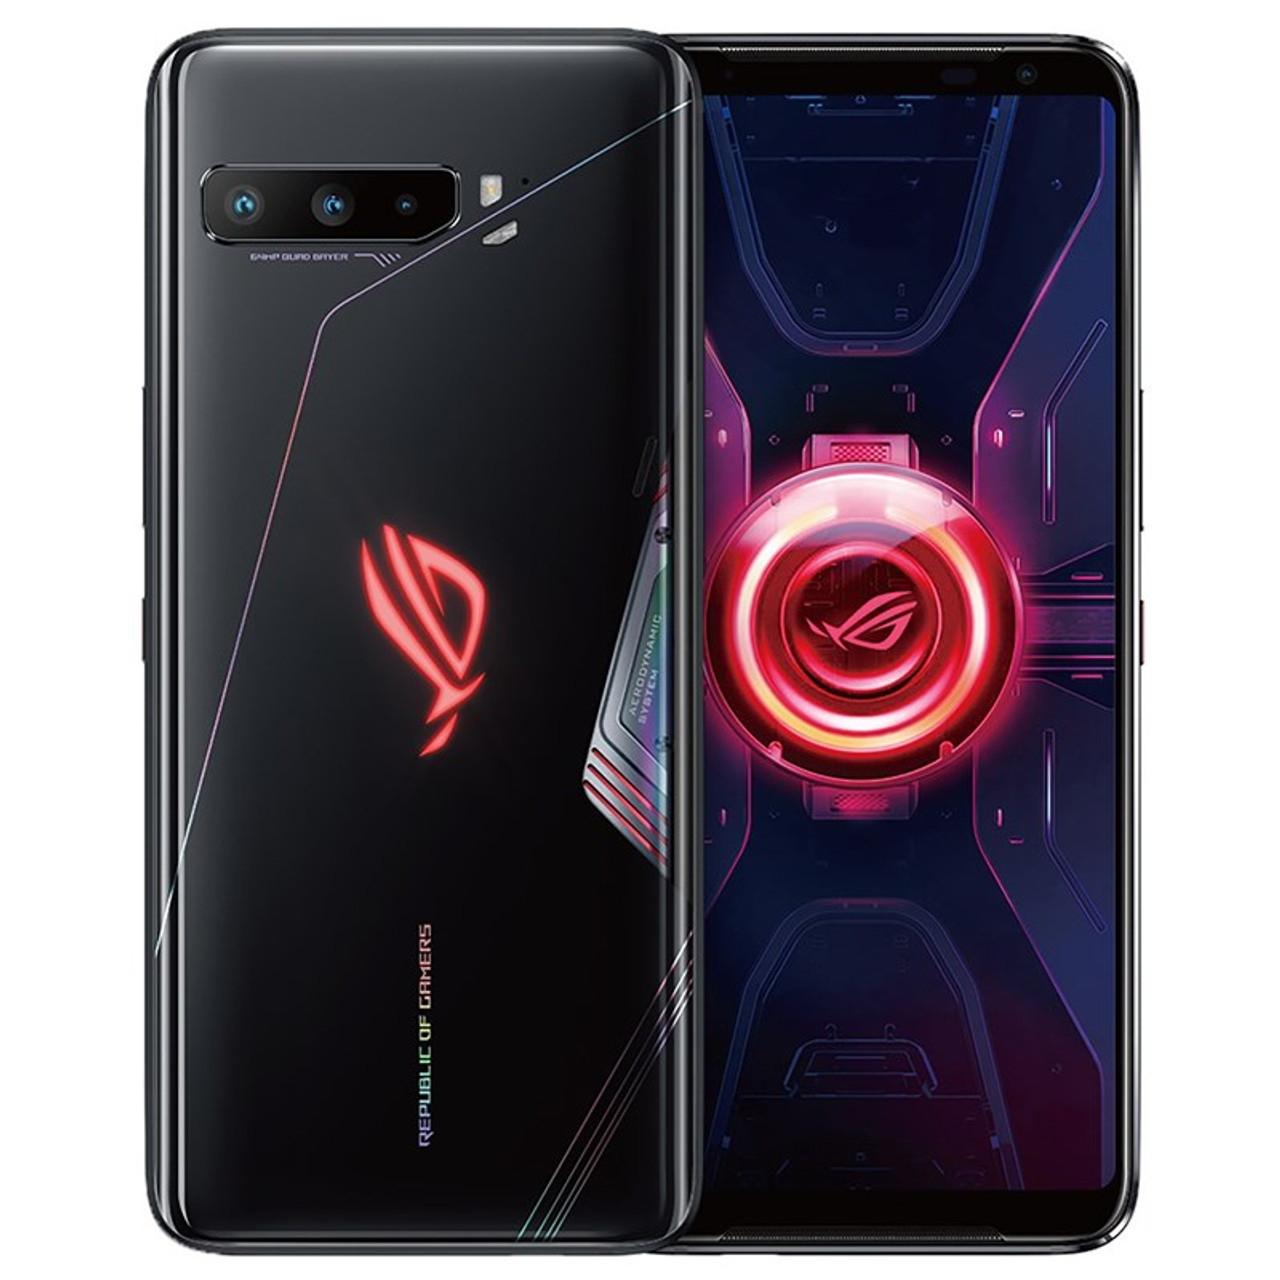 Image for Asus ROG Phone 3 144Hz 1ms AMOLED Display - 512GB CX Computer Superstore